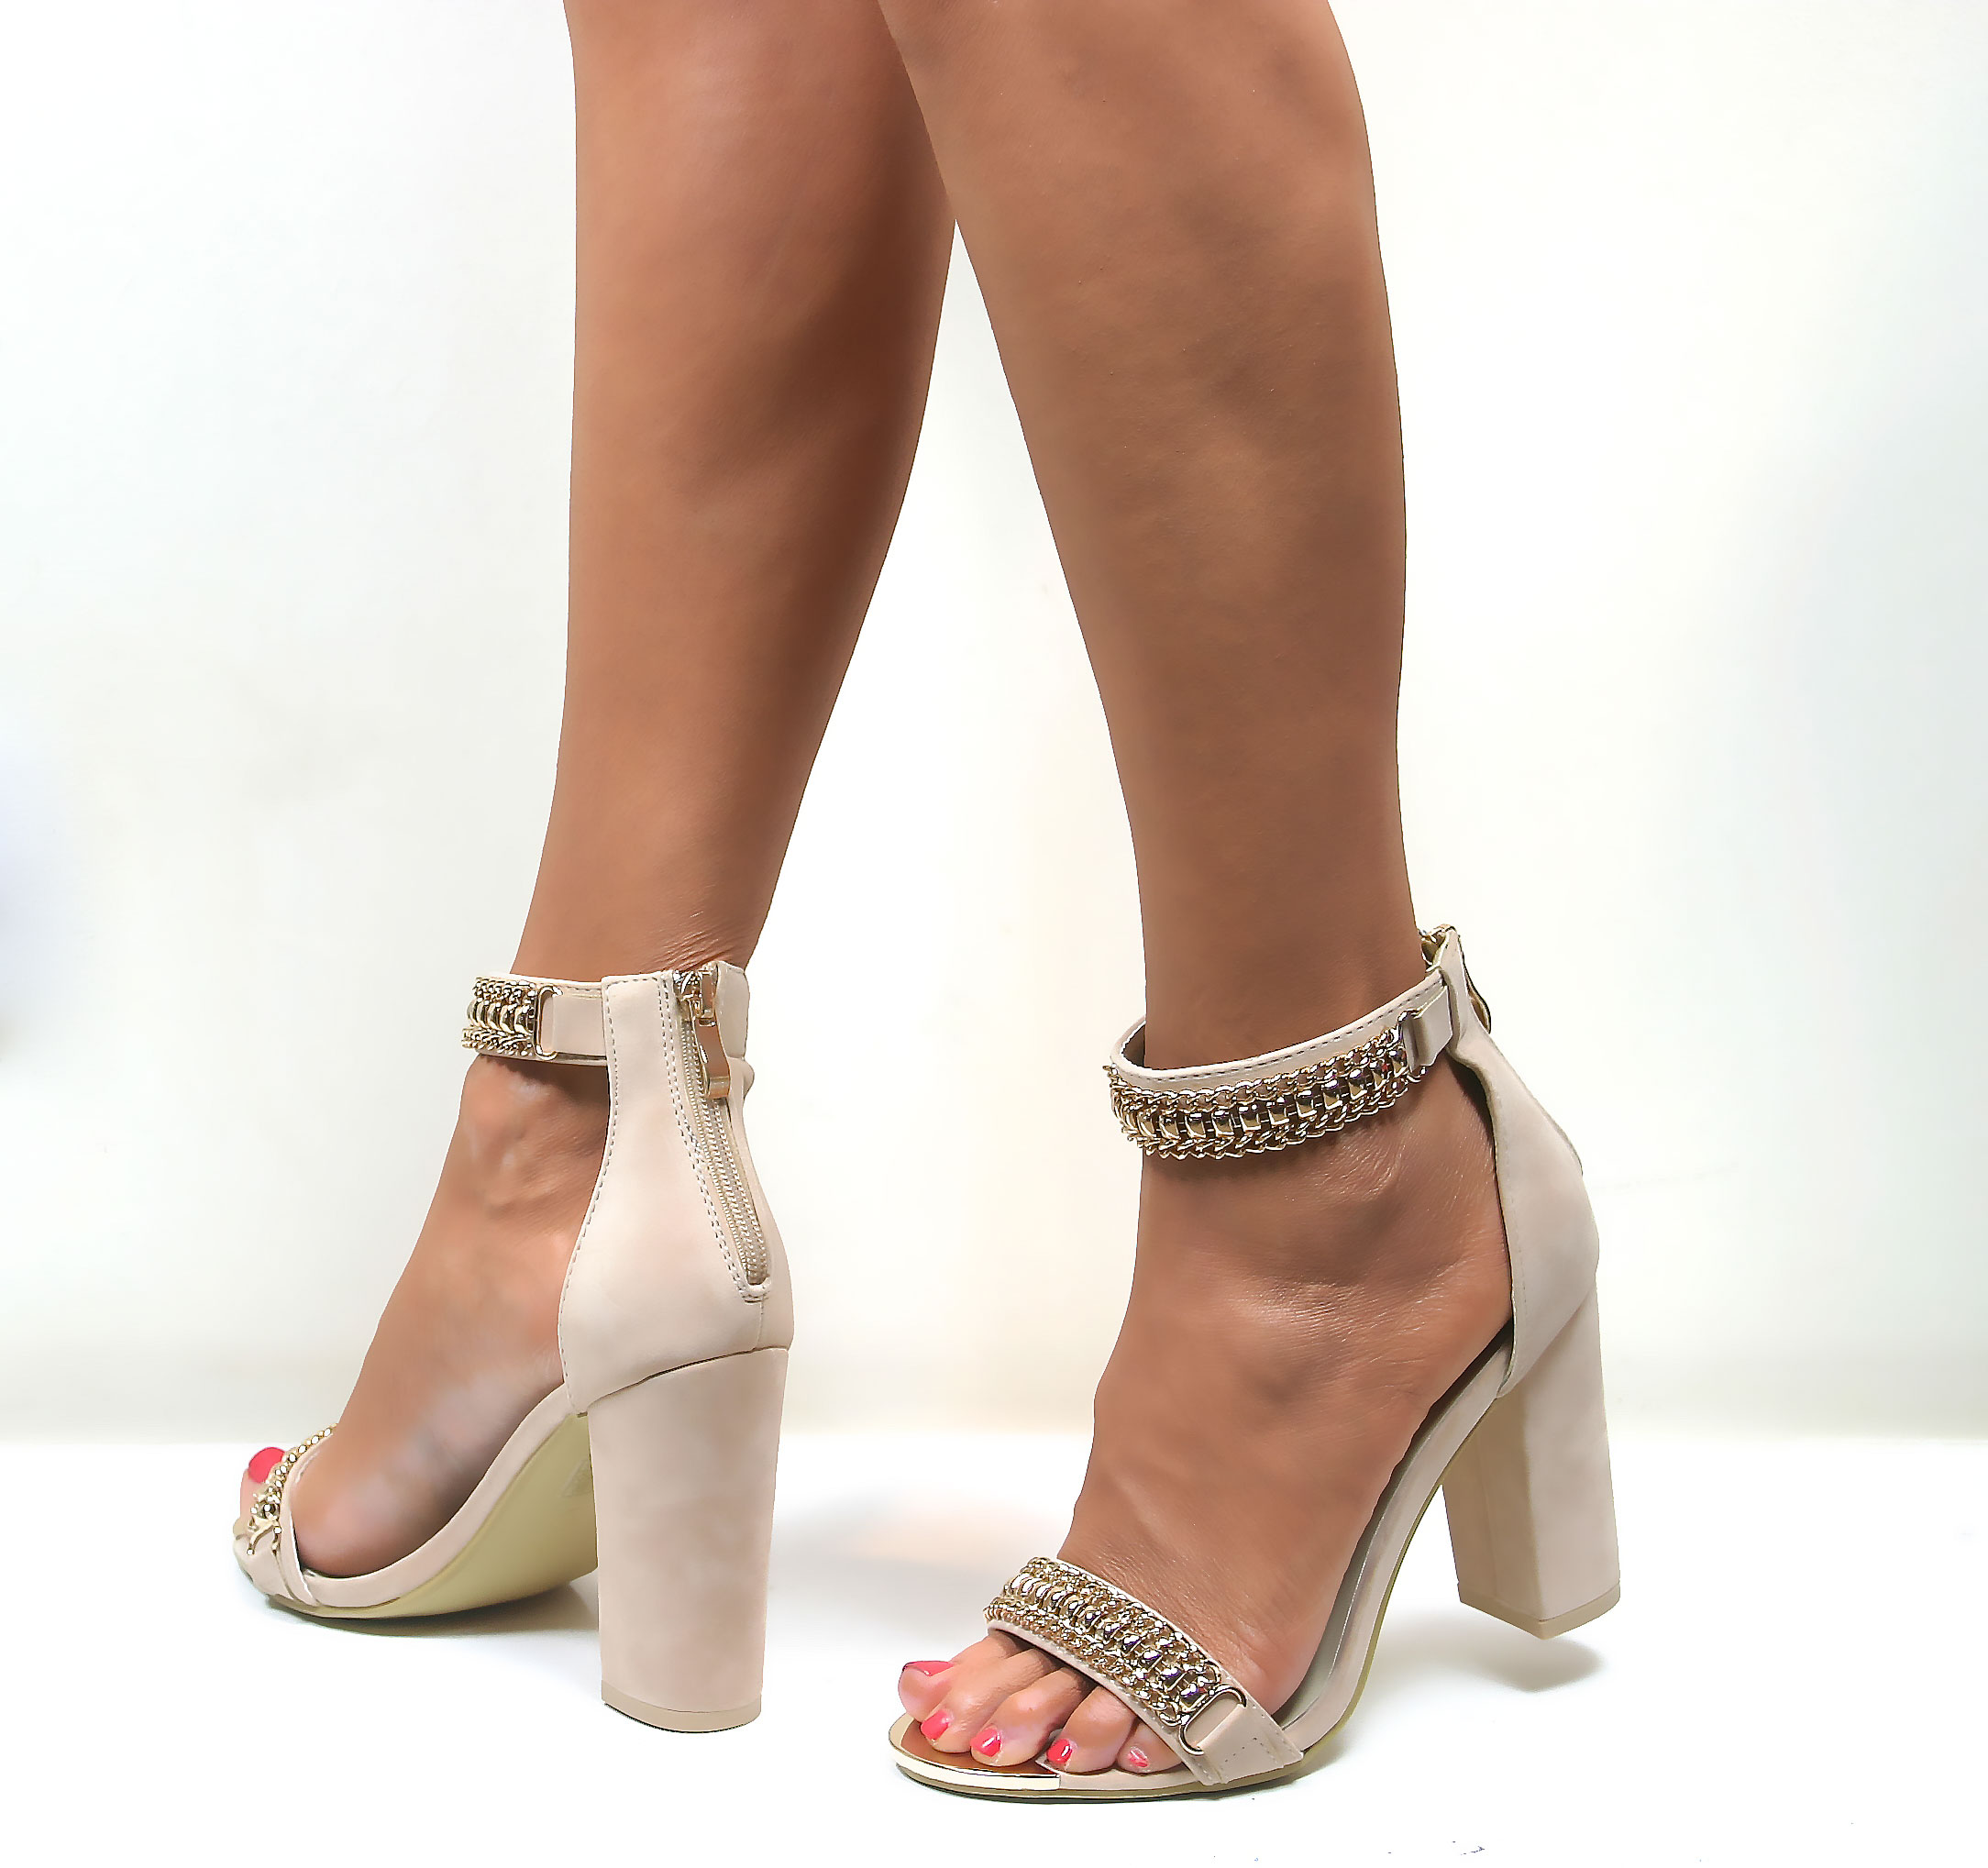 High Heel Ankle Cuff Womens with FREE Shipping & Exchanges, and a % price guarantee. Choose from a huge selection of High Heel Ankle Cuff Womens styles.